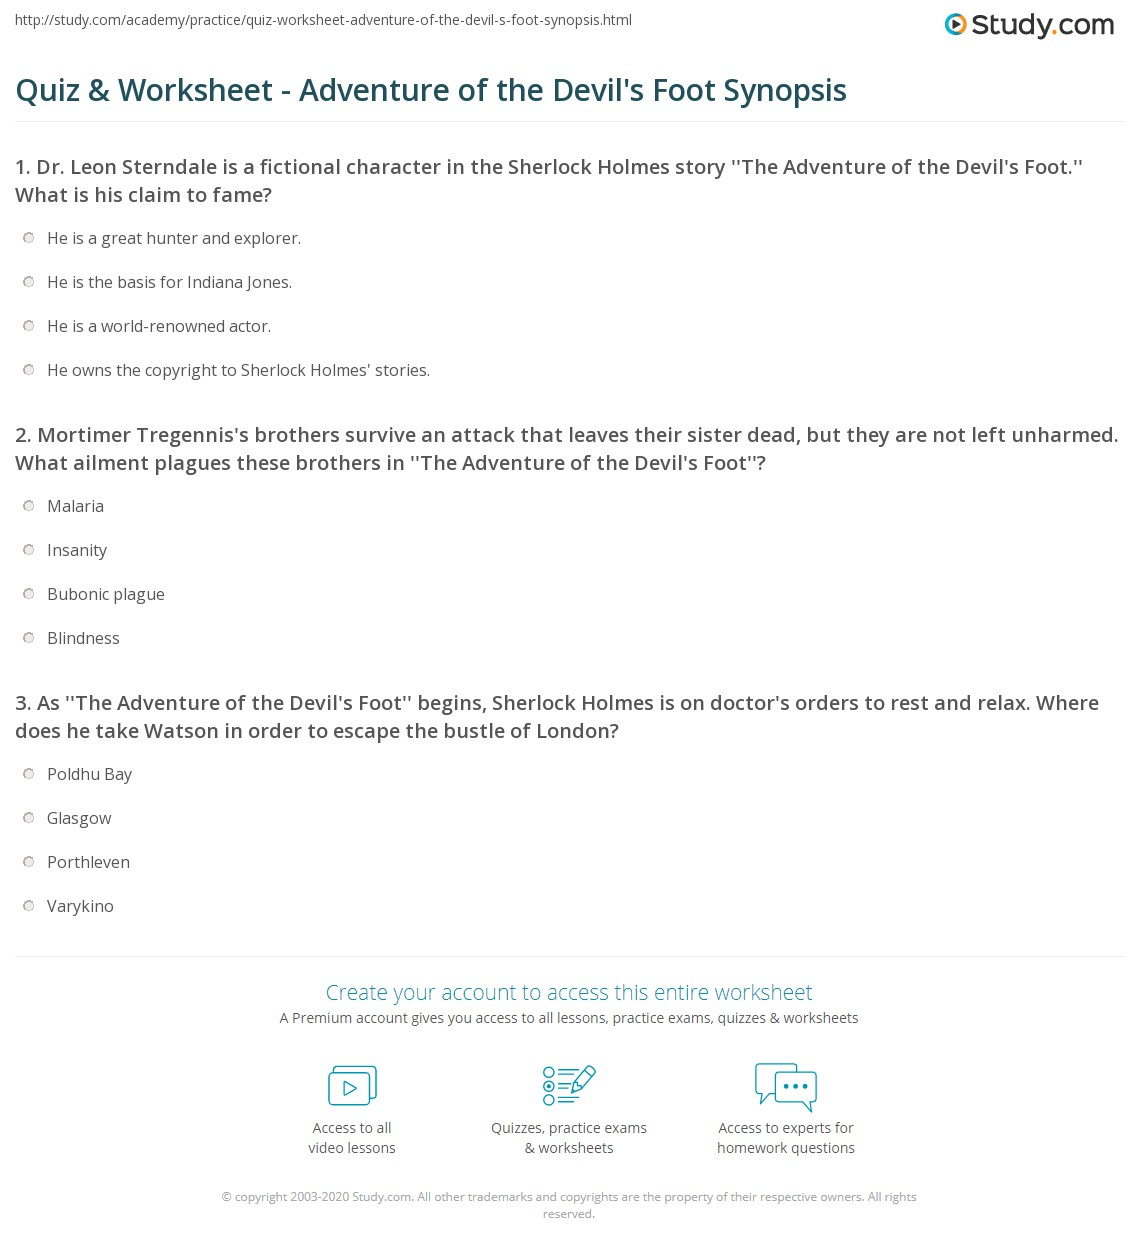 quiz worksheet adventure of the devil 39 s foot synopsis. Black Bedroom Furniture Sets. Home Design Ideas